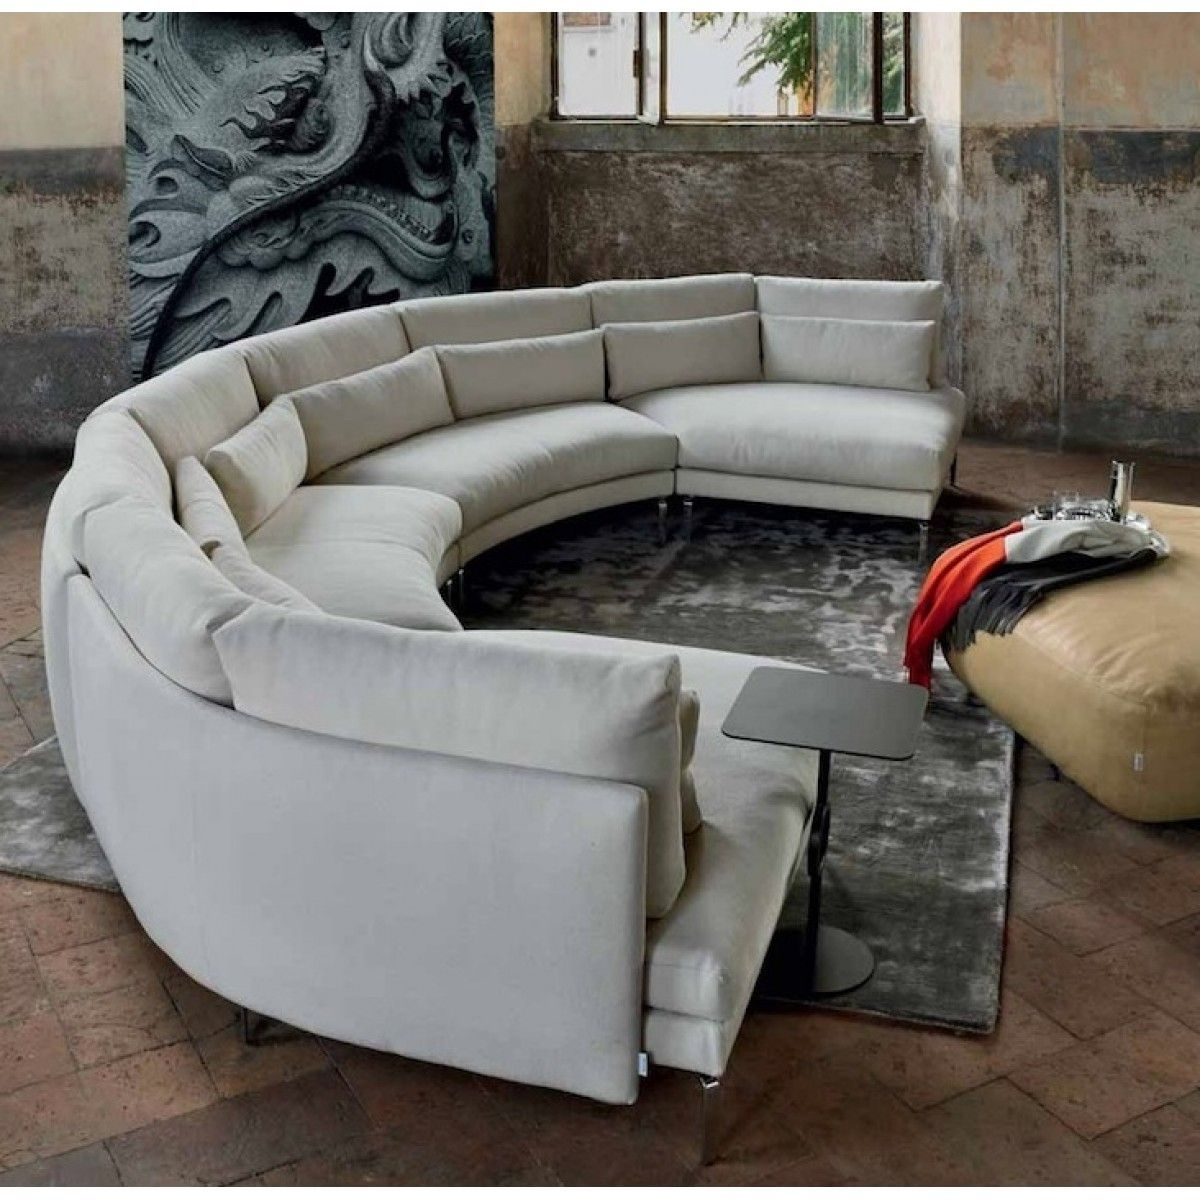 Pindaniel Harper On Decor | Pinterest | Round Couch, Comfortable Intended For Semicircular Sofas (View 6 of 10)